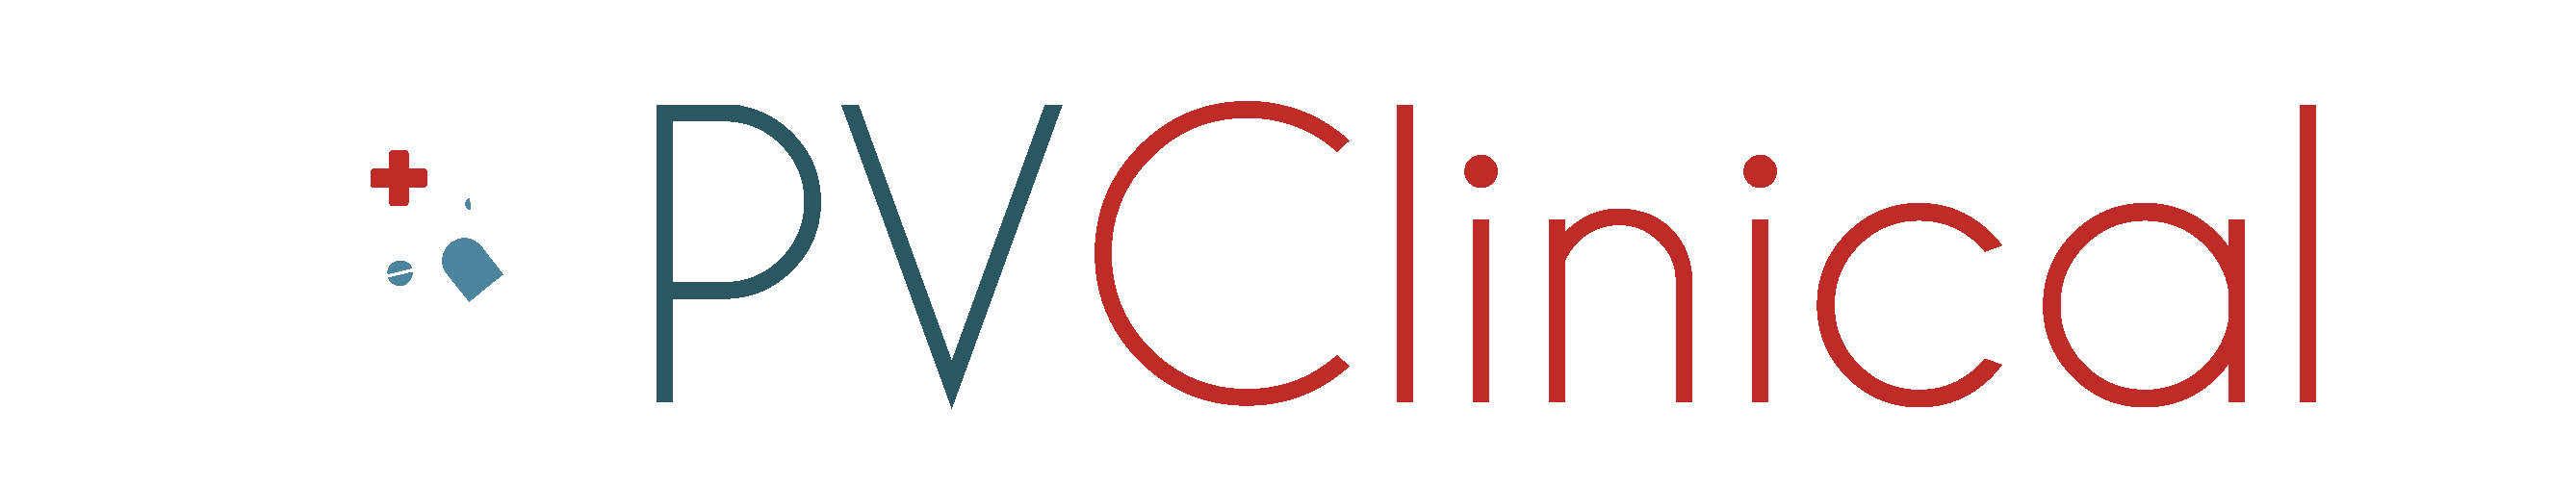 PVClinical logo